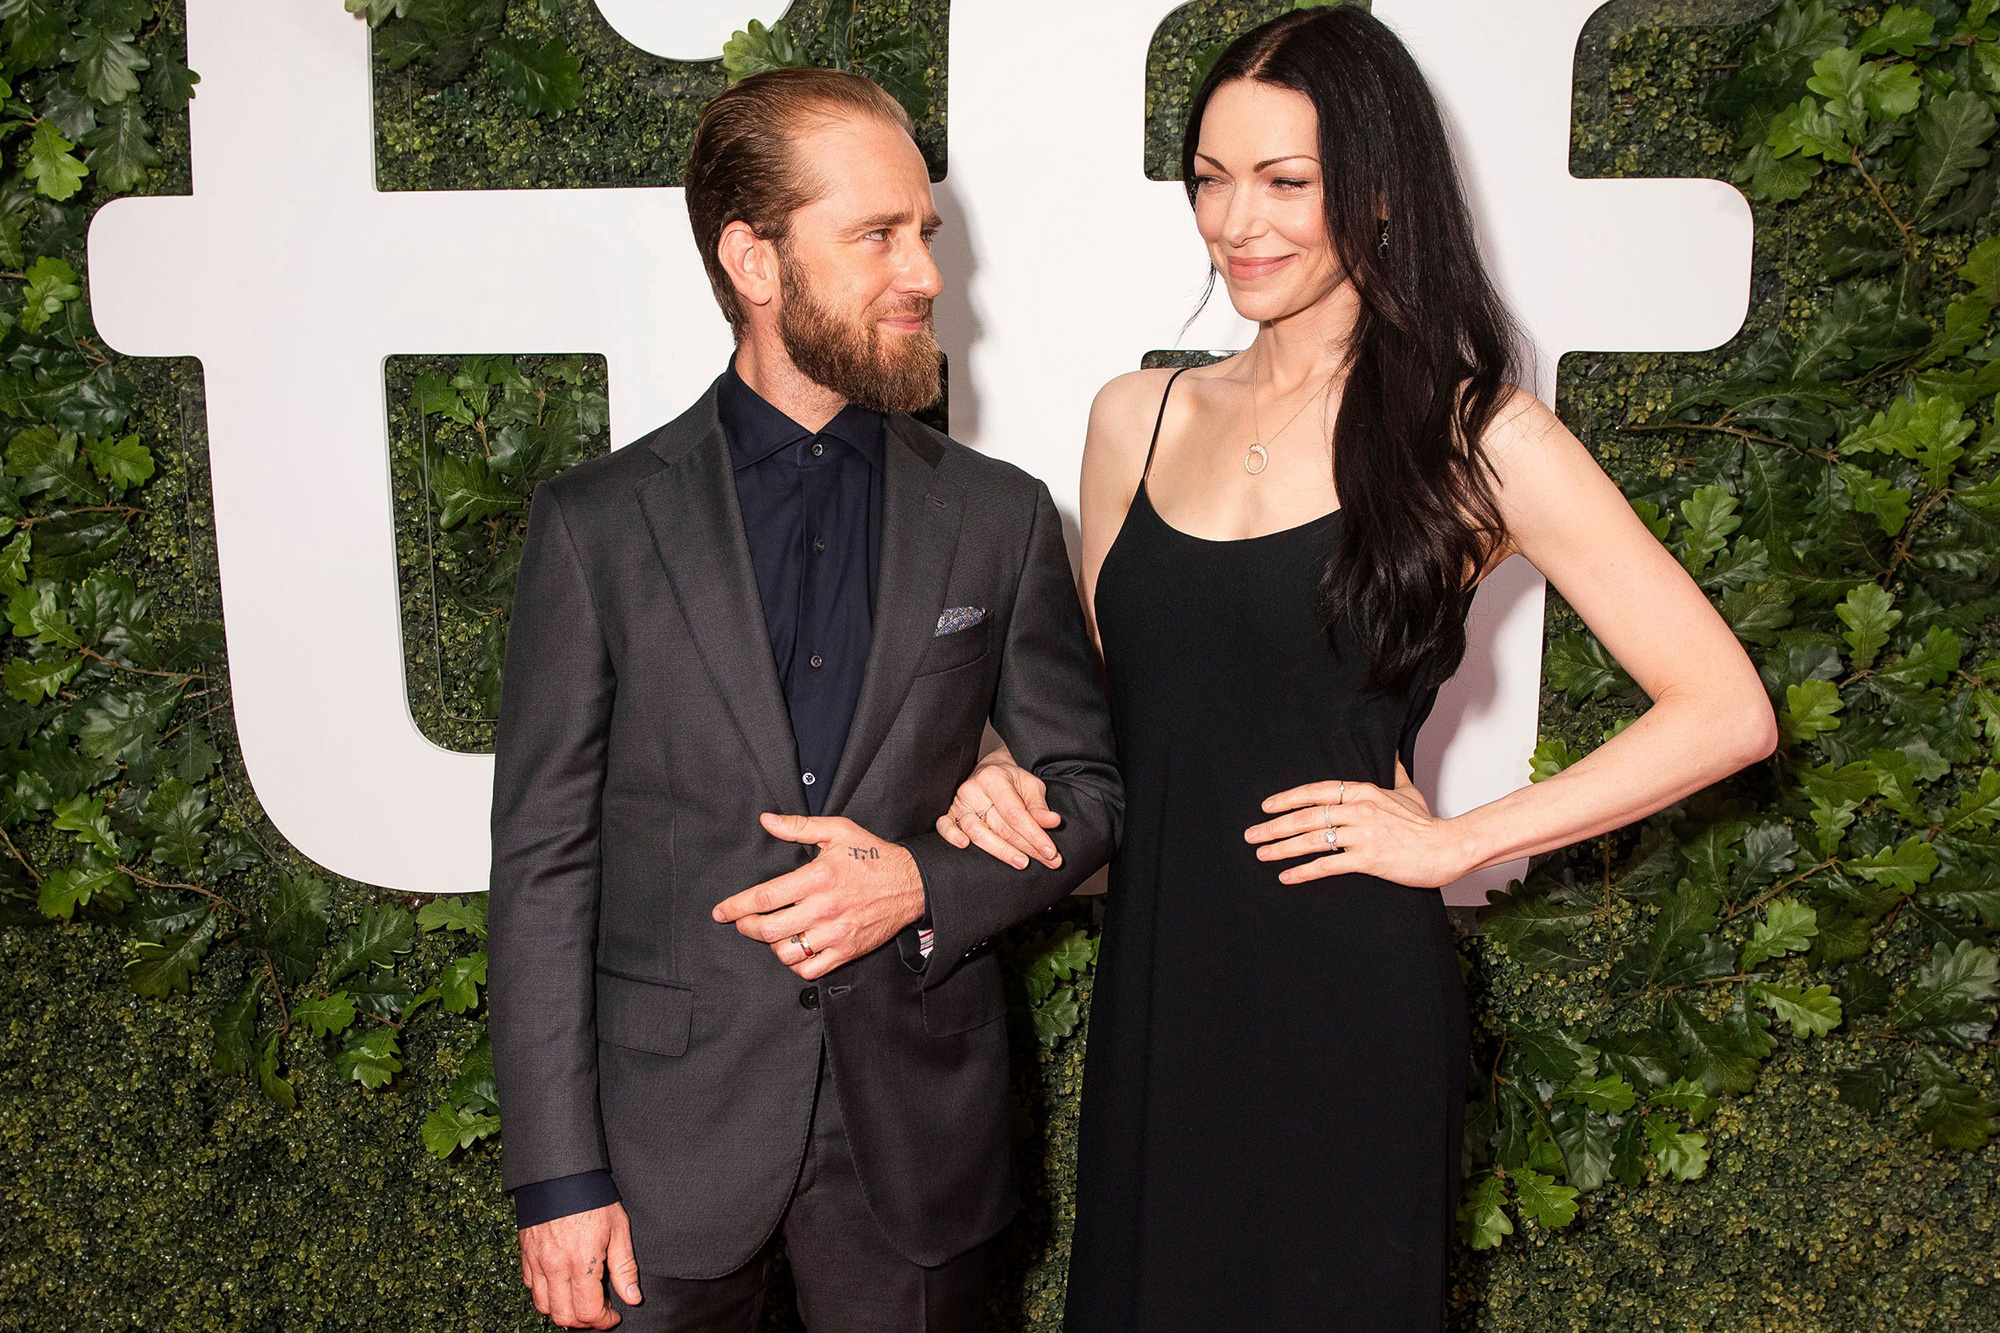 """Actor Ben Foster, left, and wife/actress Laura Prepon seen at the world premiere of """"The Survivor"""" at the Toronto International Film Festival, in Toronto 2021 TIFF - """"The Survivor"""" World Premiere & After Party, Toronto, Canada - 13 Sep 2021"""